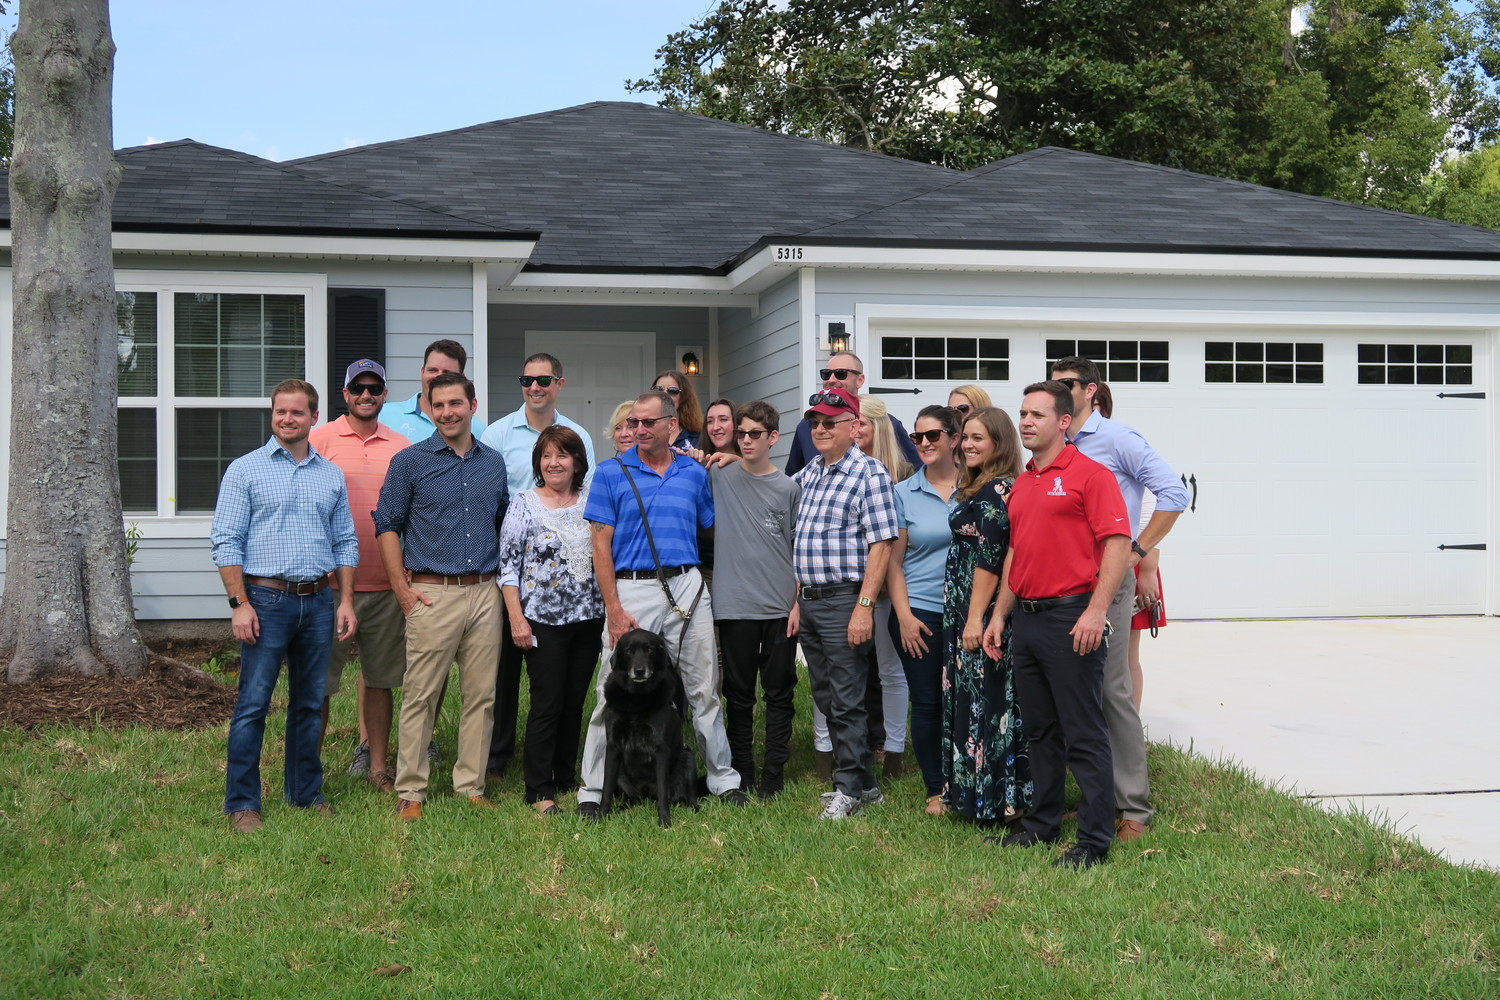 JWB Real Estate and K9s For Warriors staff pose with Smith and Berkley in front of their new home.